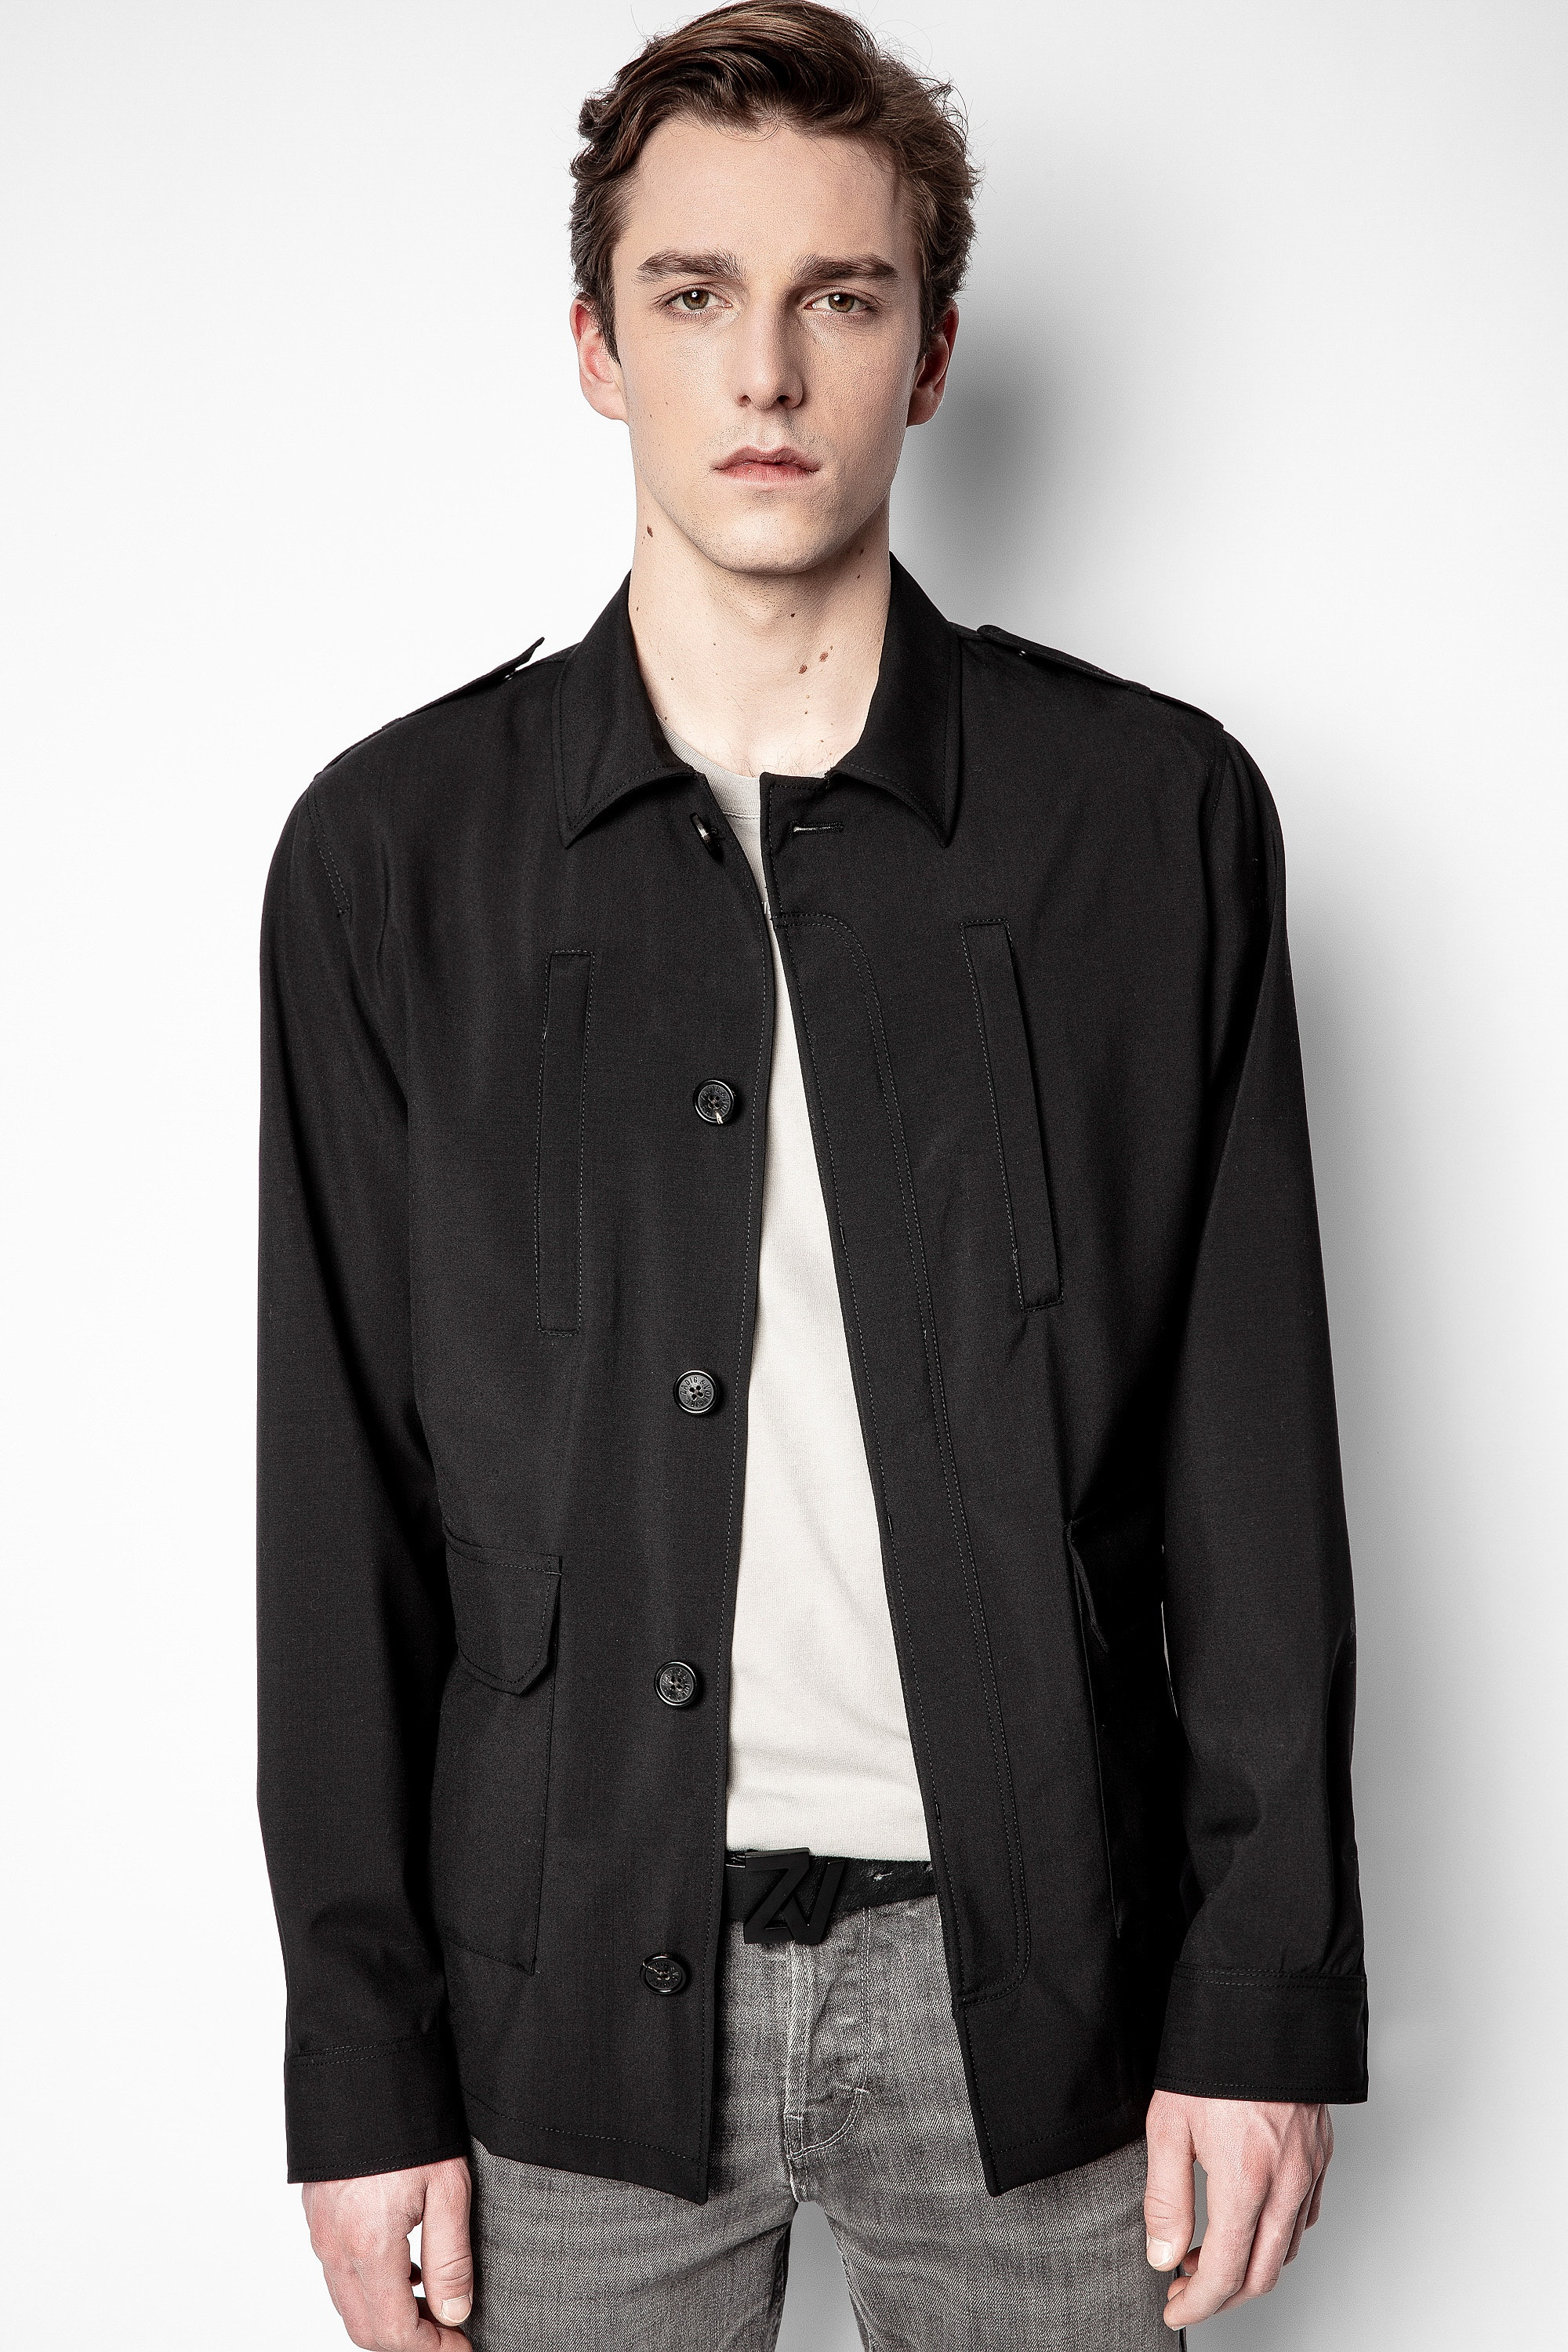 Kindo Wool Tech Jacket